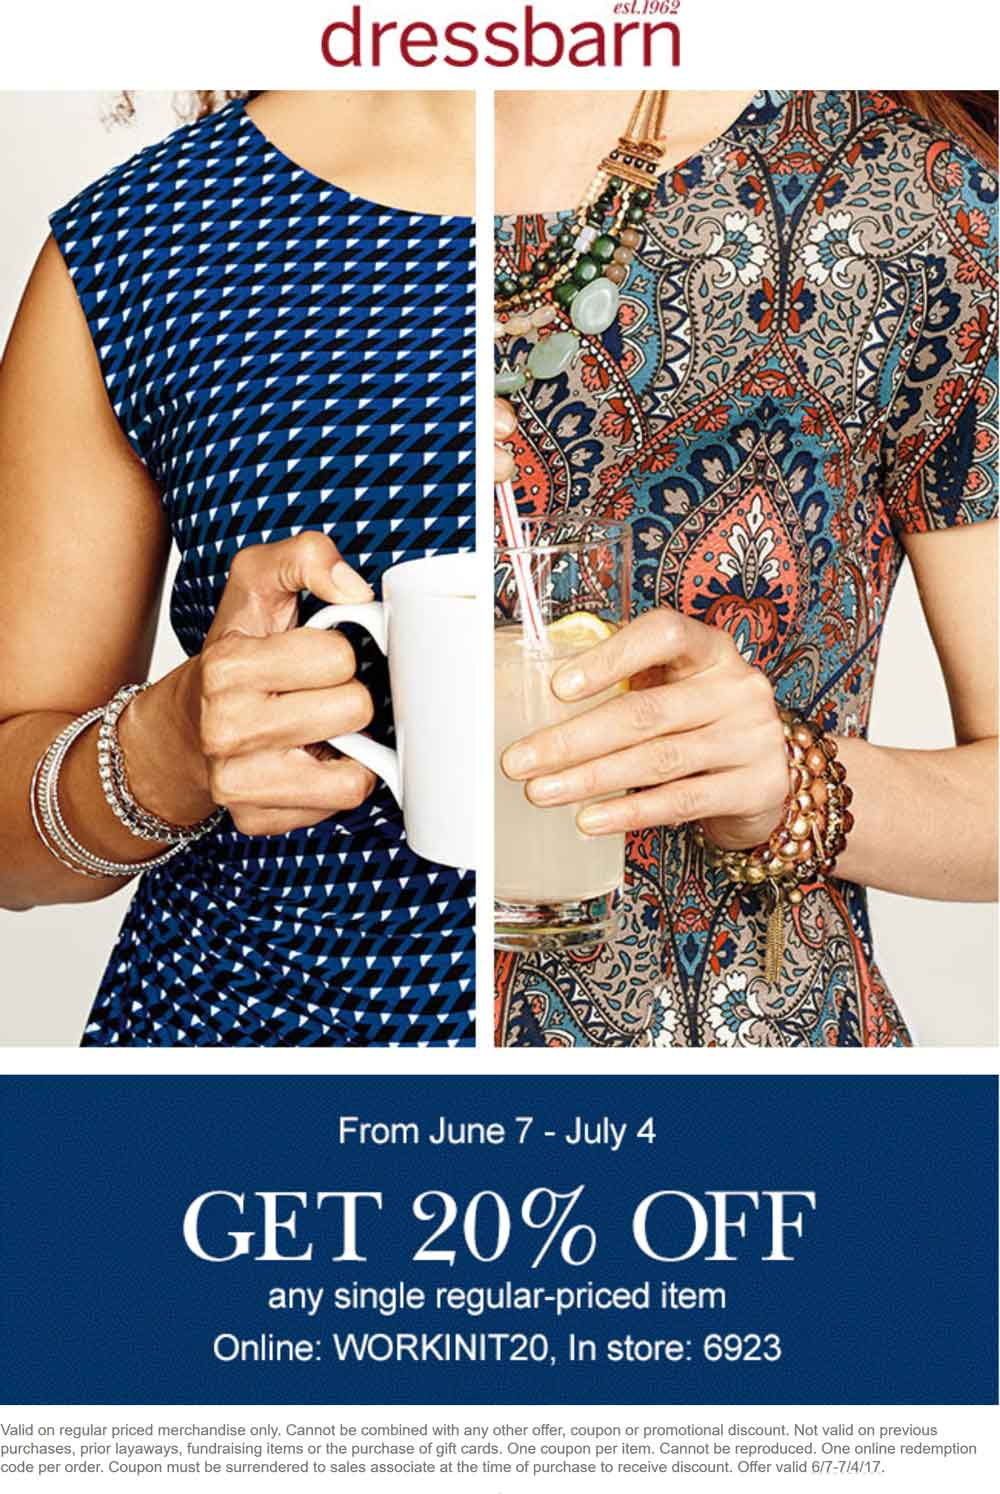 Dressbarn Coupon October 2018 20% off a single item at Dressbarn, or online via promo code WORKINIT20